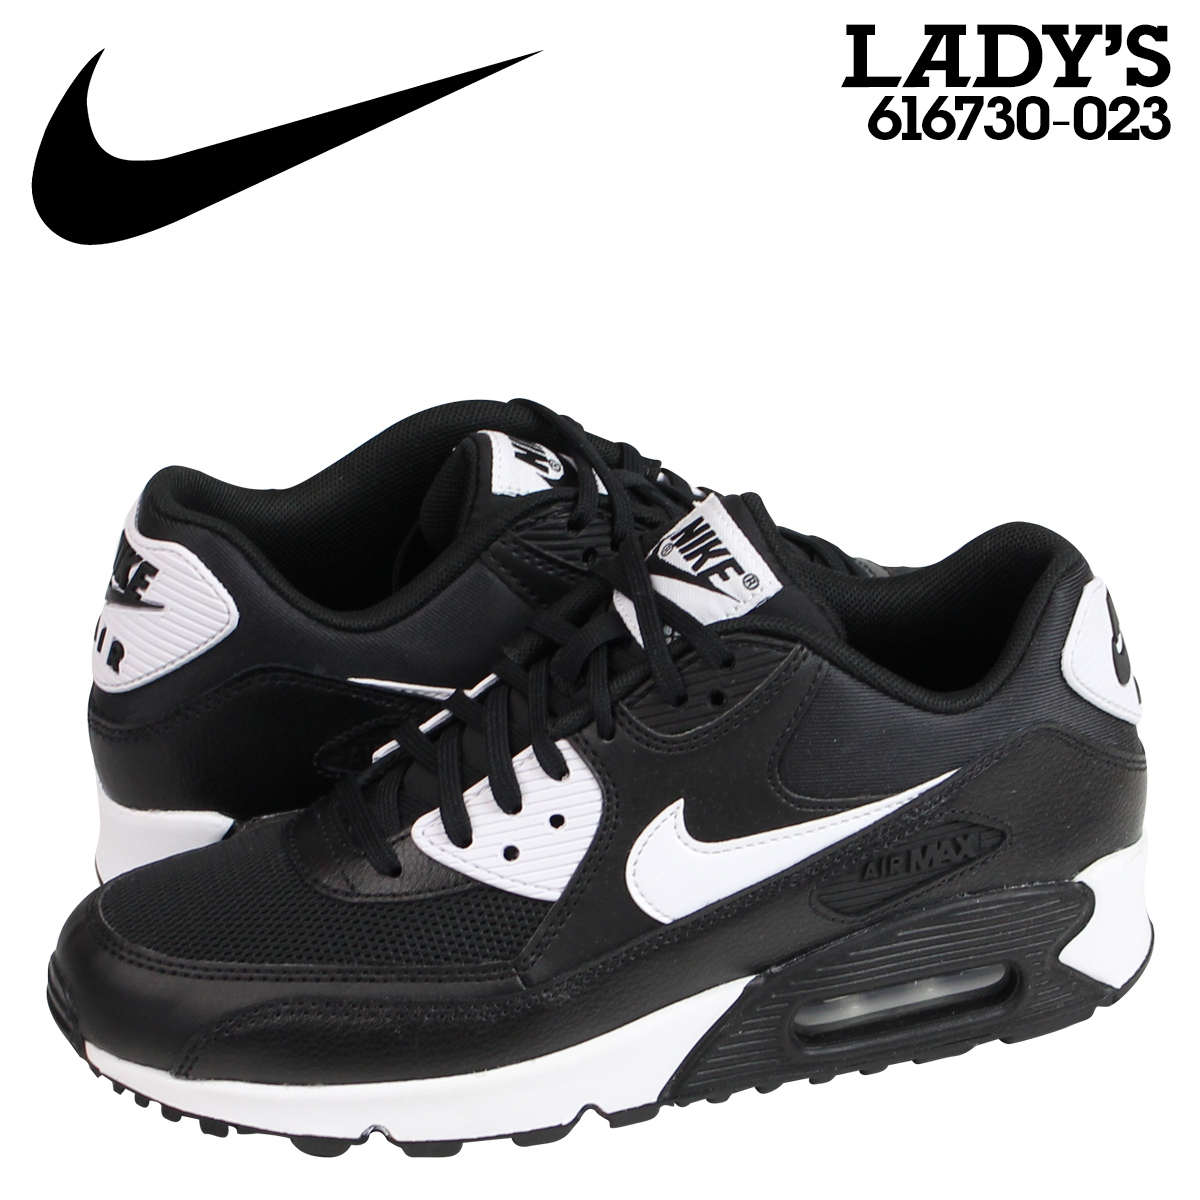 best loved 65609 64873 ALLSPORTS  Nike NIKE Air Max sneakers Womens WMNS AIR MAX 90 ESSENTIAL Air  Max 90 essential 616730 - 023 shoes black   Rakuten Global Market